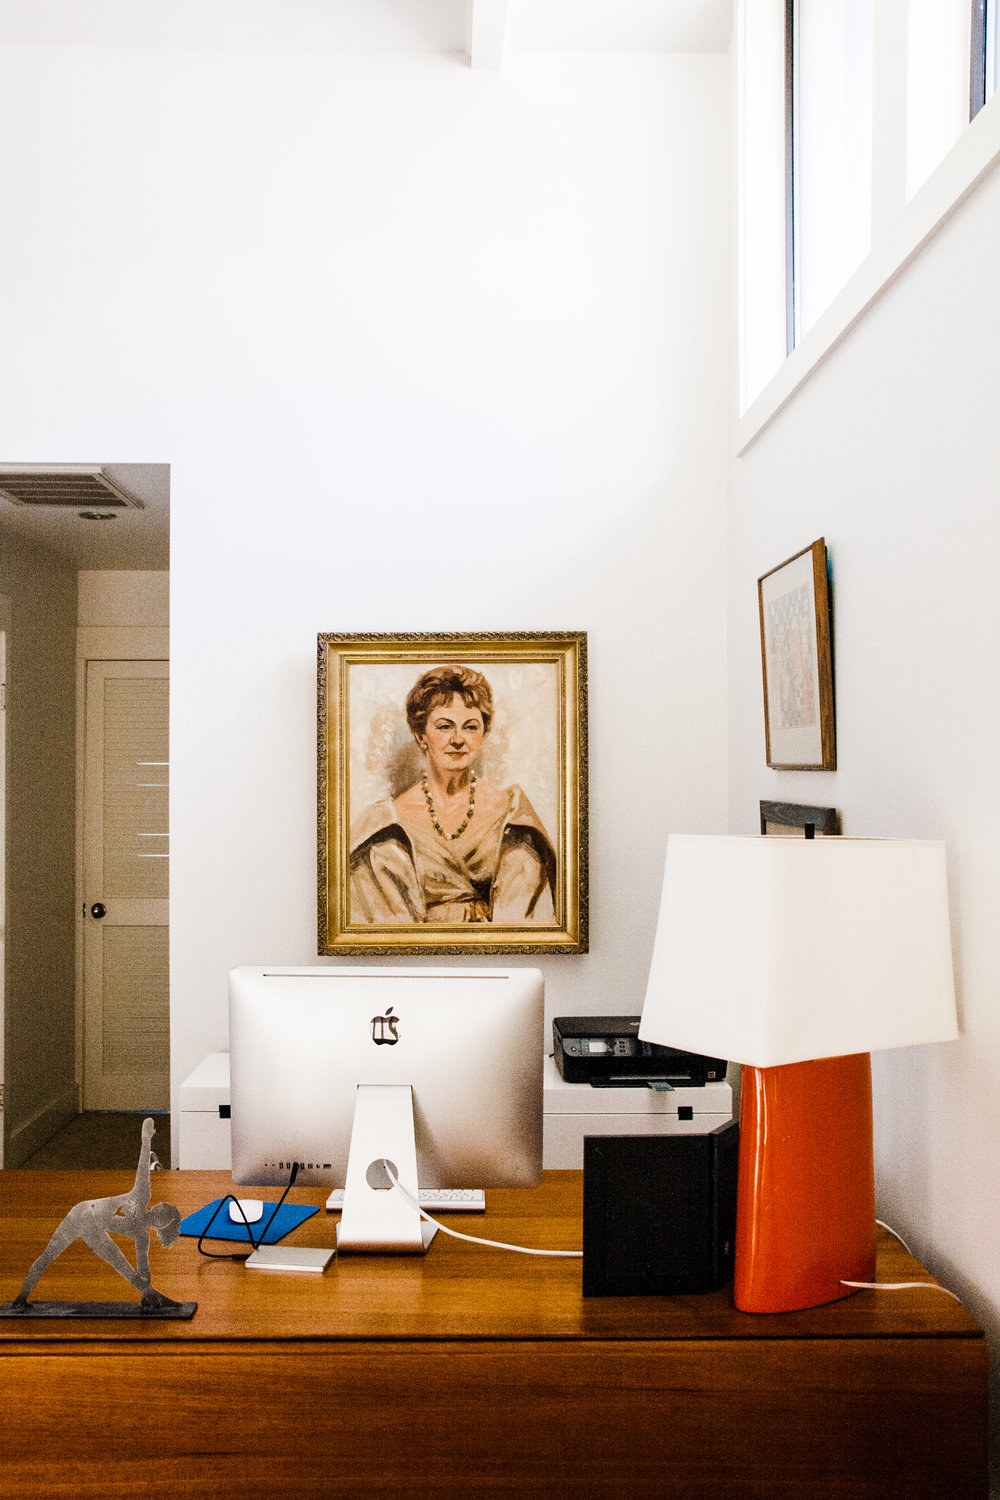 We chose to hang a portrait of her grandmother (grandma, right?) behind Annie's desk in a prominent position. Grandma is also facing the portrait of baby Annie that is nestled on the small wall to the left of the sliding glass doors (pictured above).